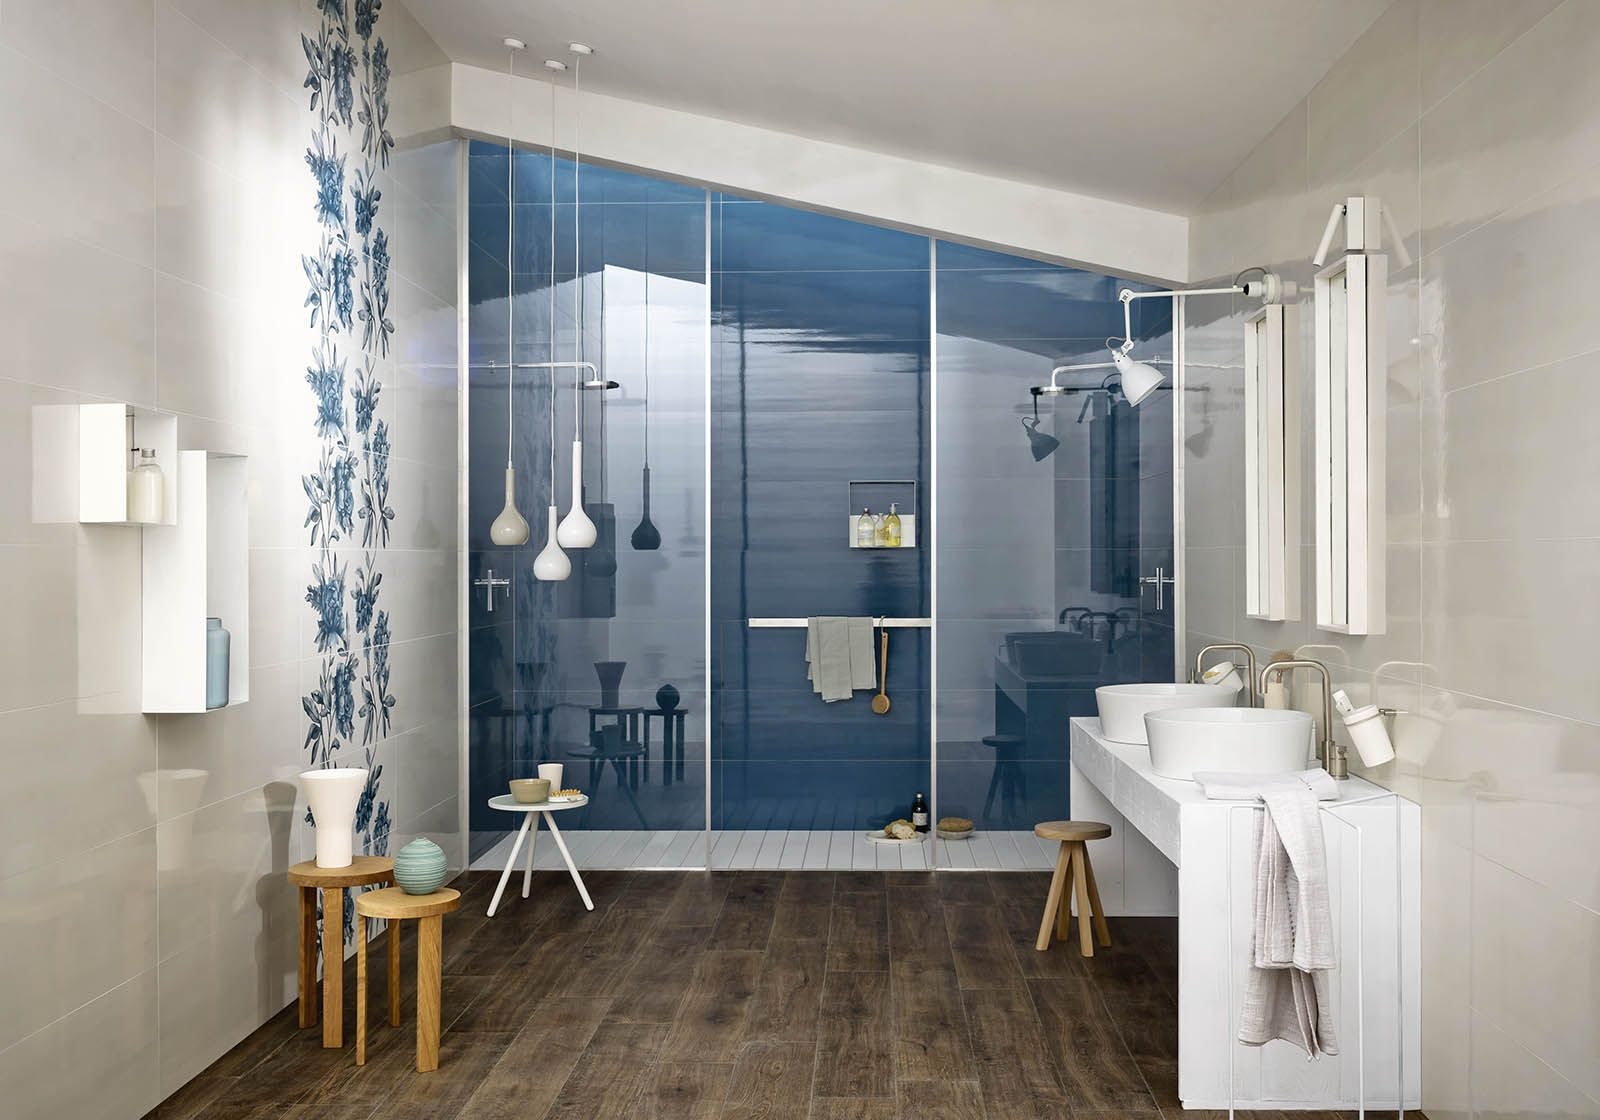 Imperfetto Ceramic Tiles For Bathroom Coverings Marazzi Home